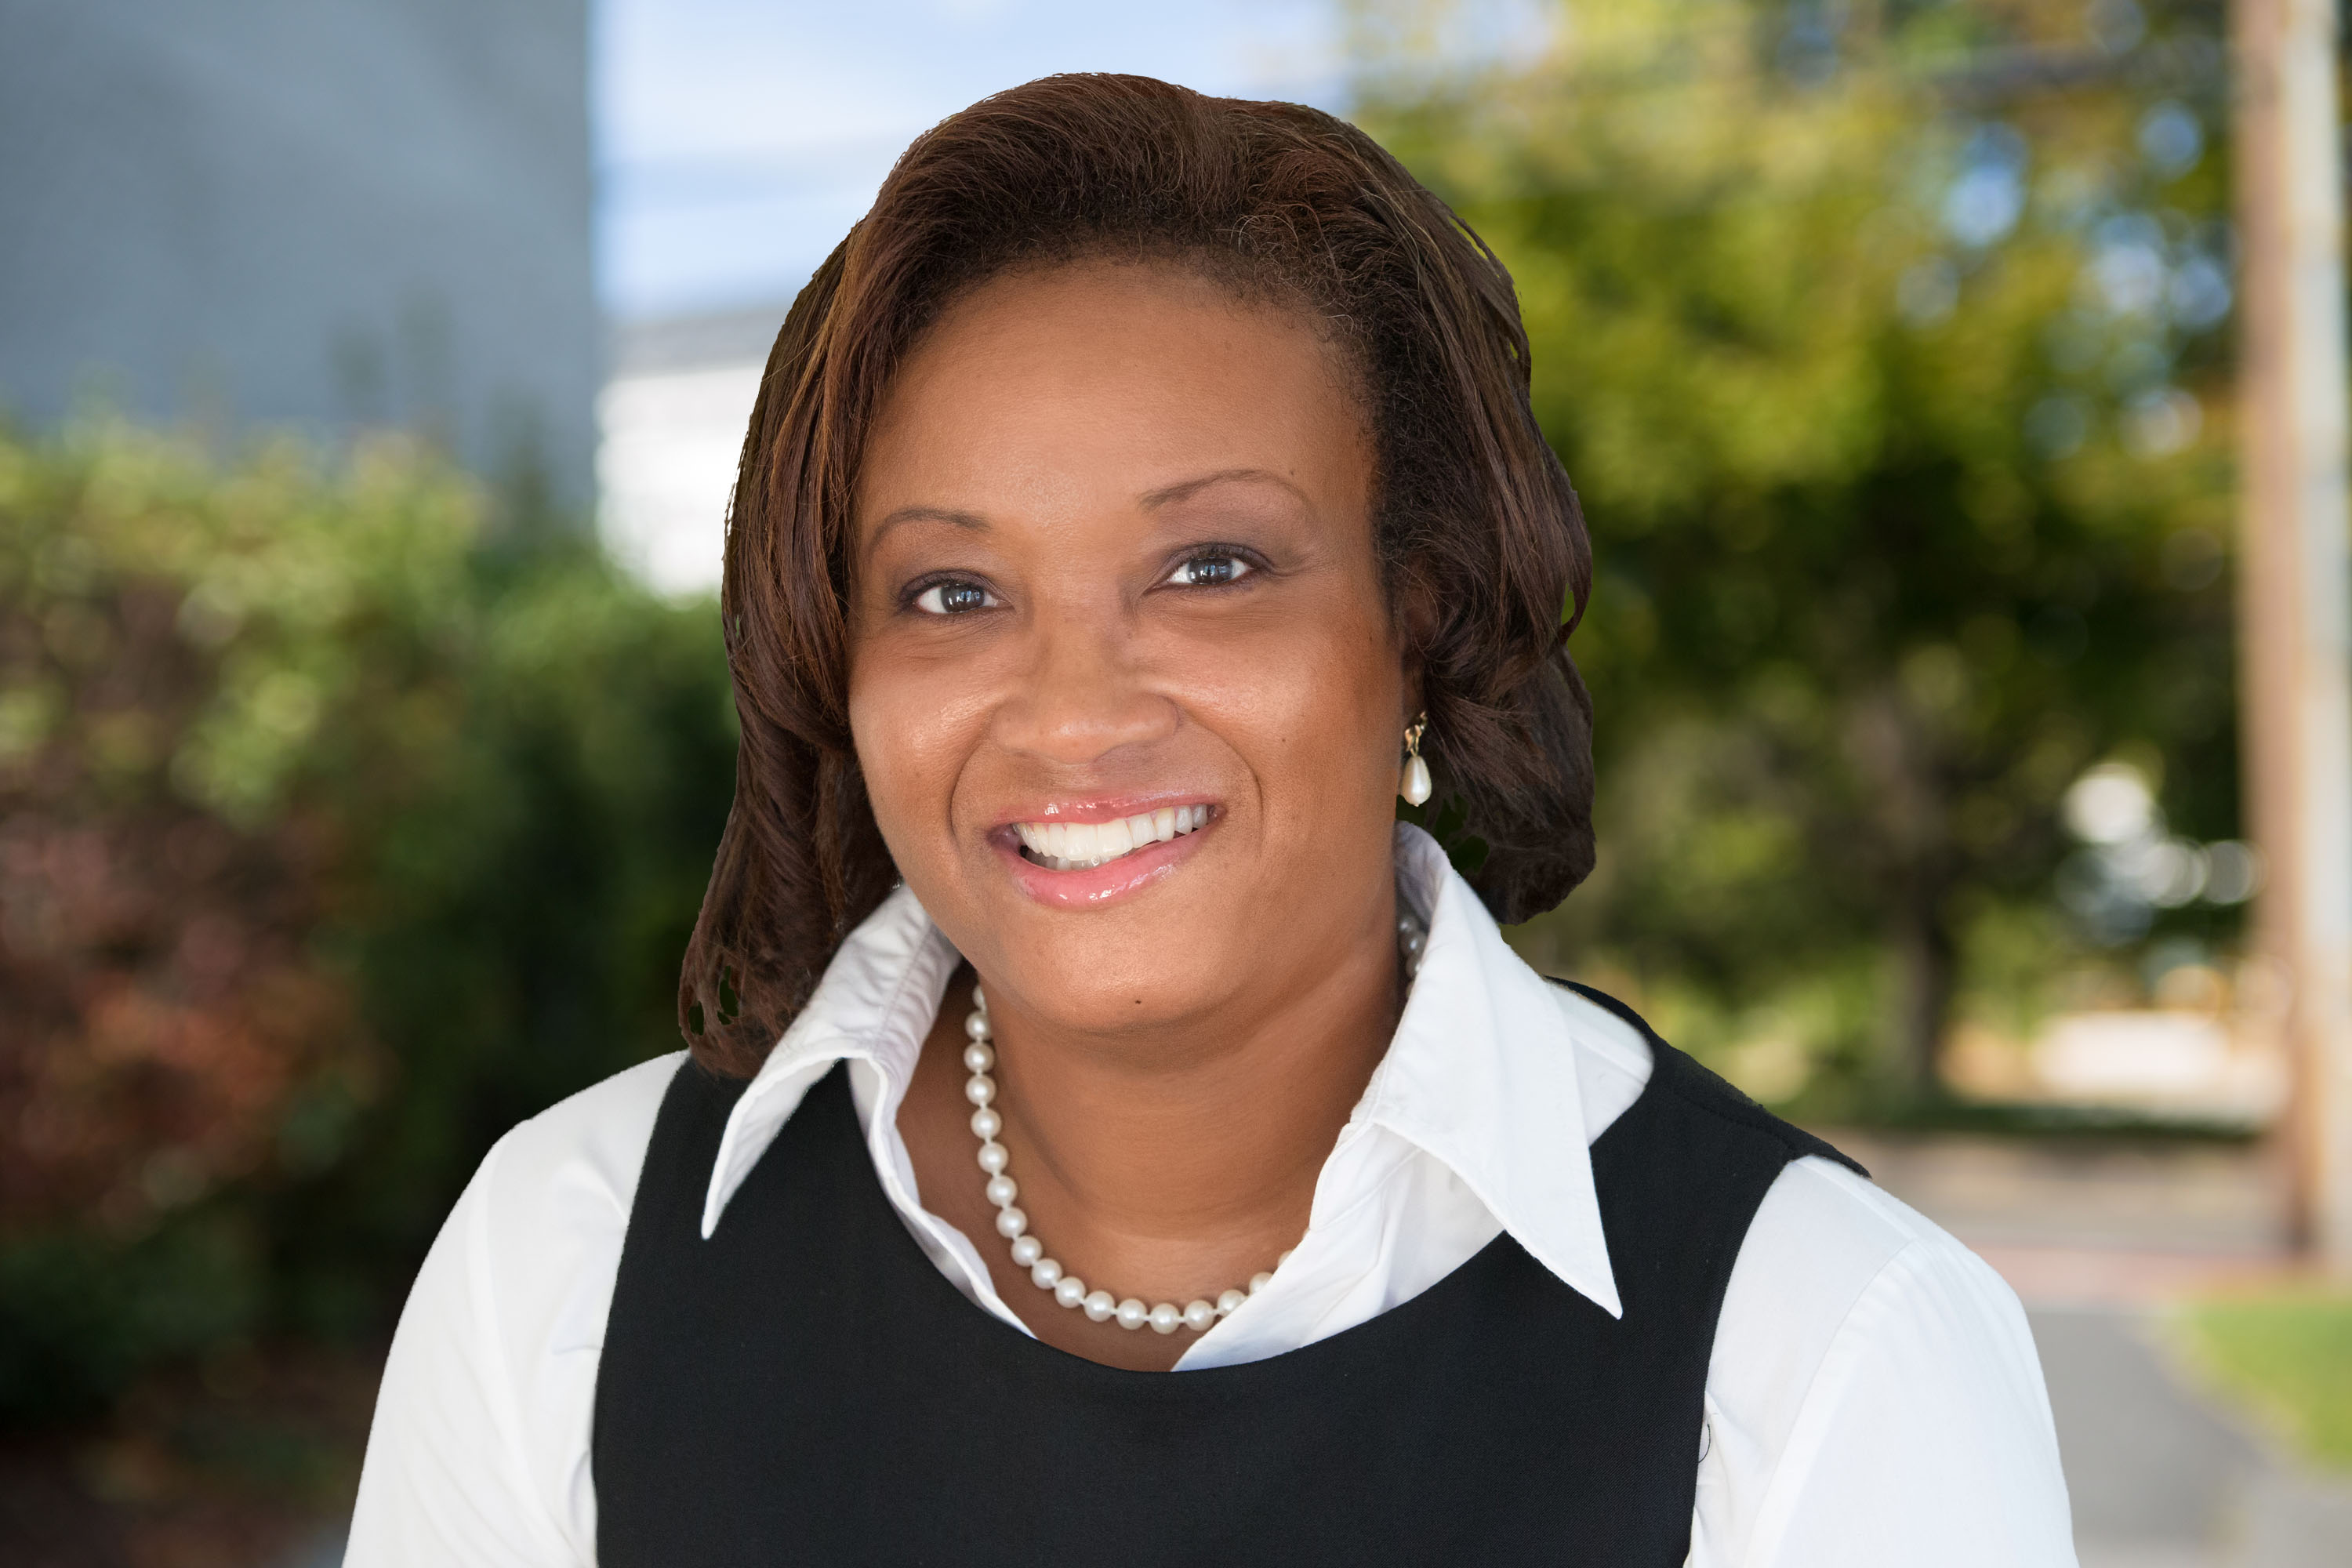 April K. Fitzgerald Recognized as a Woman of the Month for October 2020 by P.O.W.E.R. (Professional Organization of Women of Excellence Recognized)